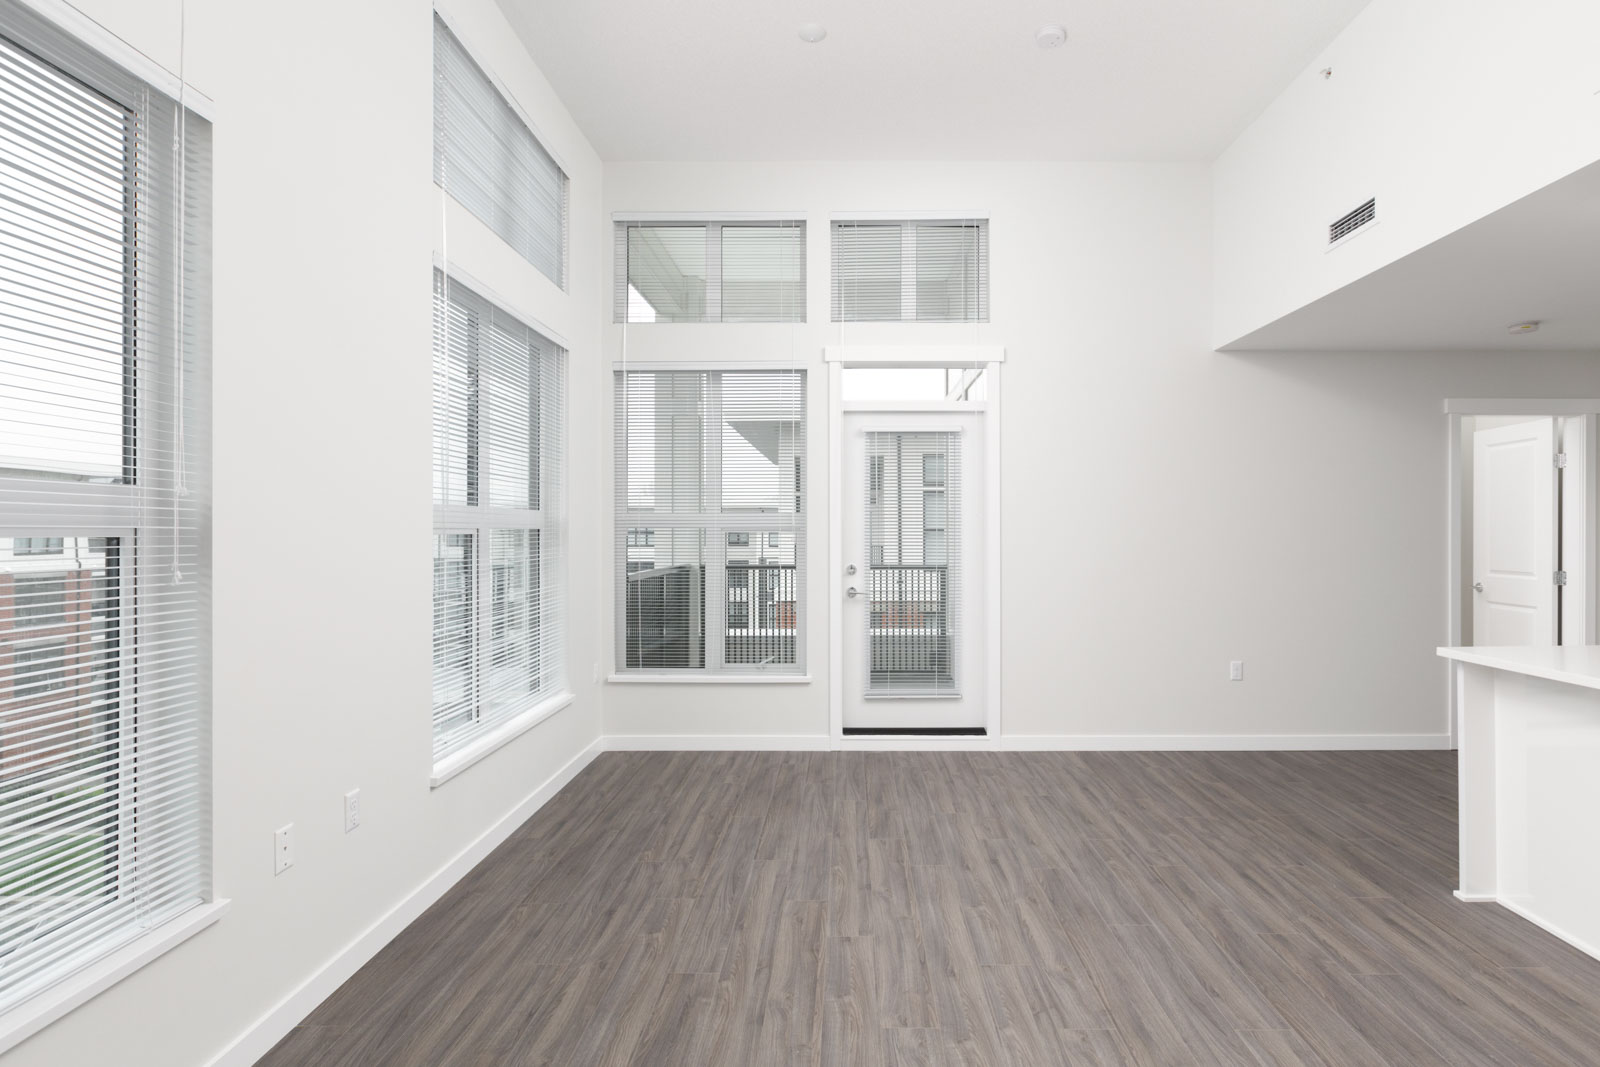 empty townhouse room with windows and hardwood floor